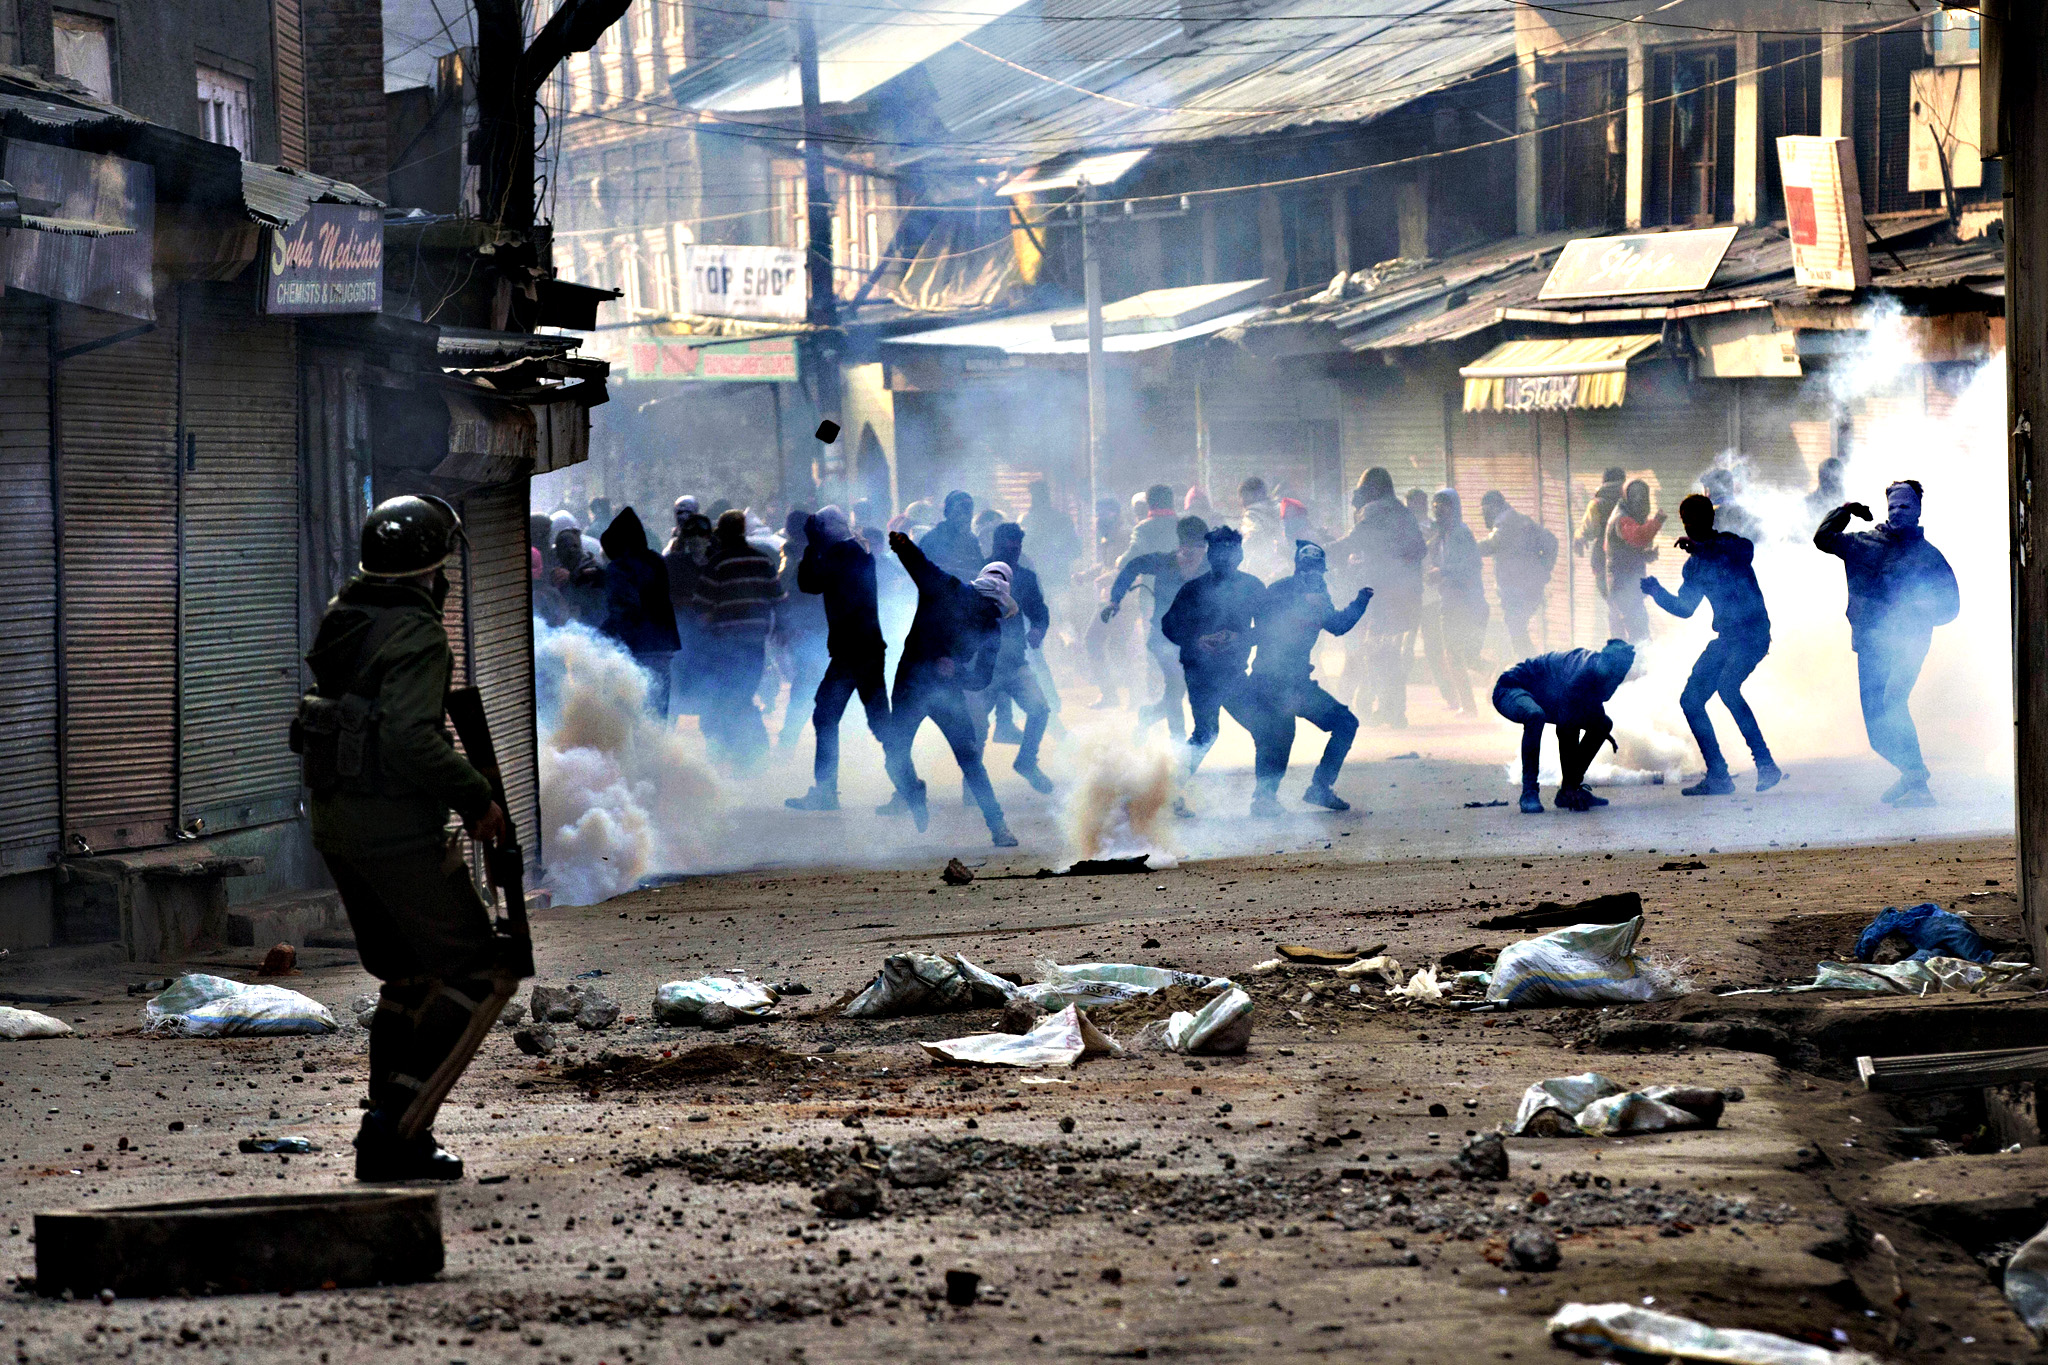 Kashmiri protesters, engulfed in teargas smoke, throw stones at Indian security personnel in Srinagar, Indian-controlled Kashmir, Friday, Dec. 18, 2015. Police fired teargas and rubber bullets to disperse Kashmiris who gathered after Friday afternoon prayers to protest against Indian rule in the disputed region.